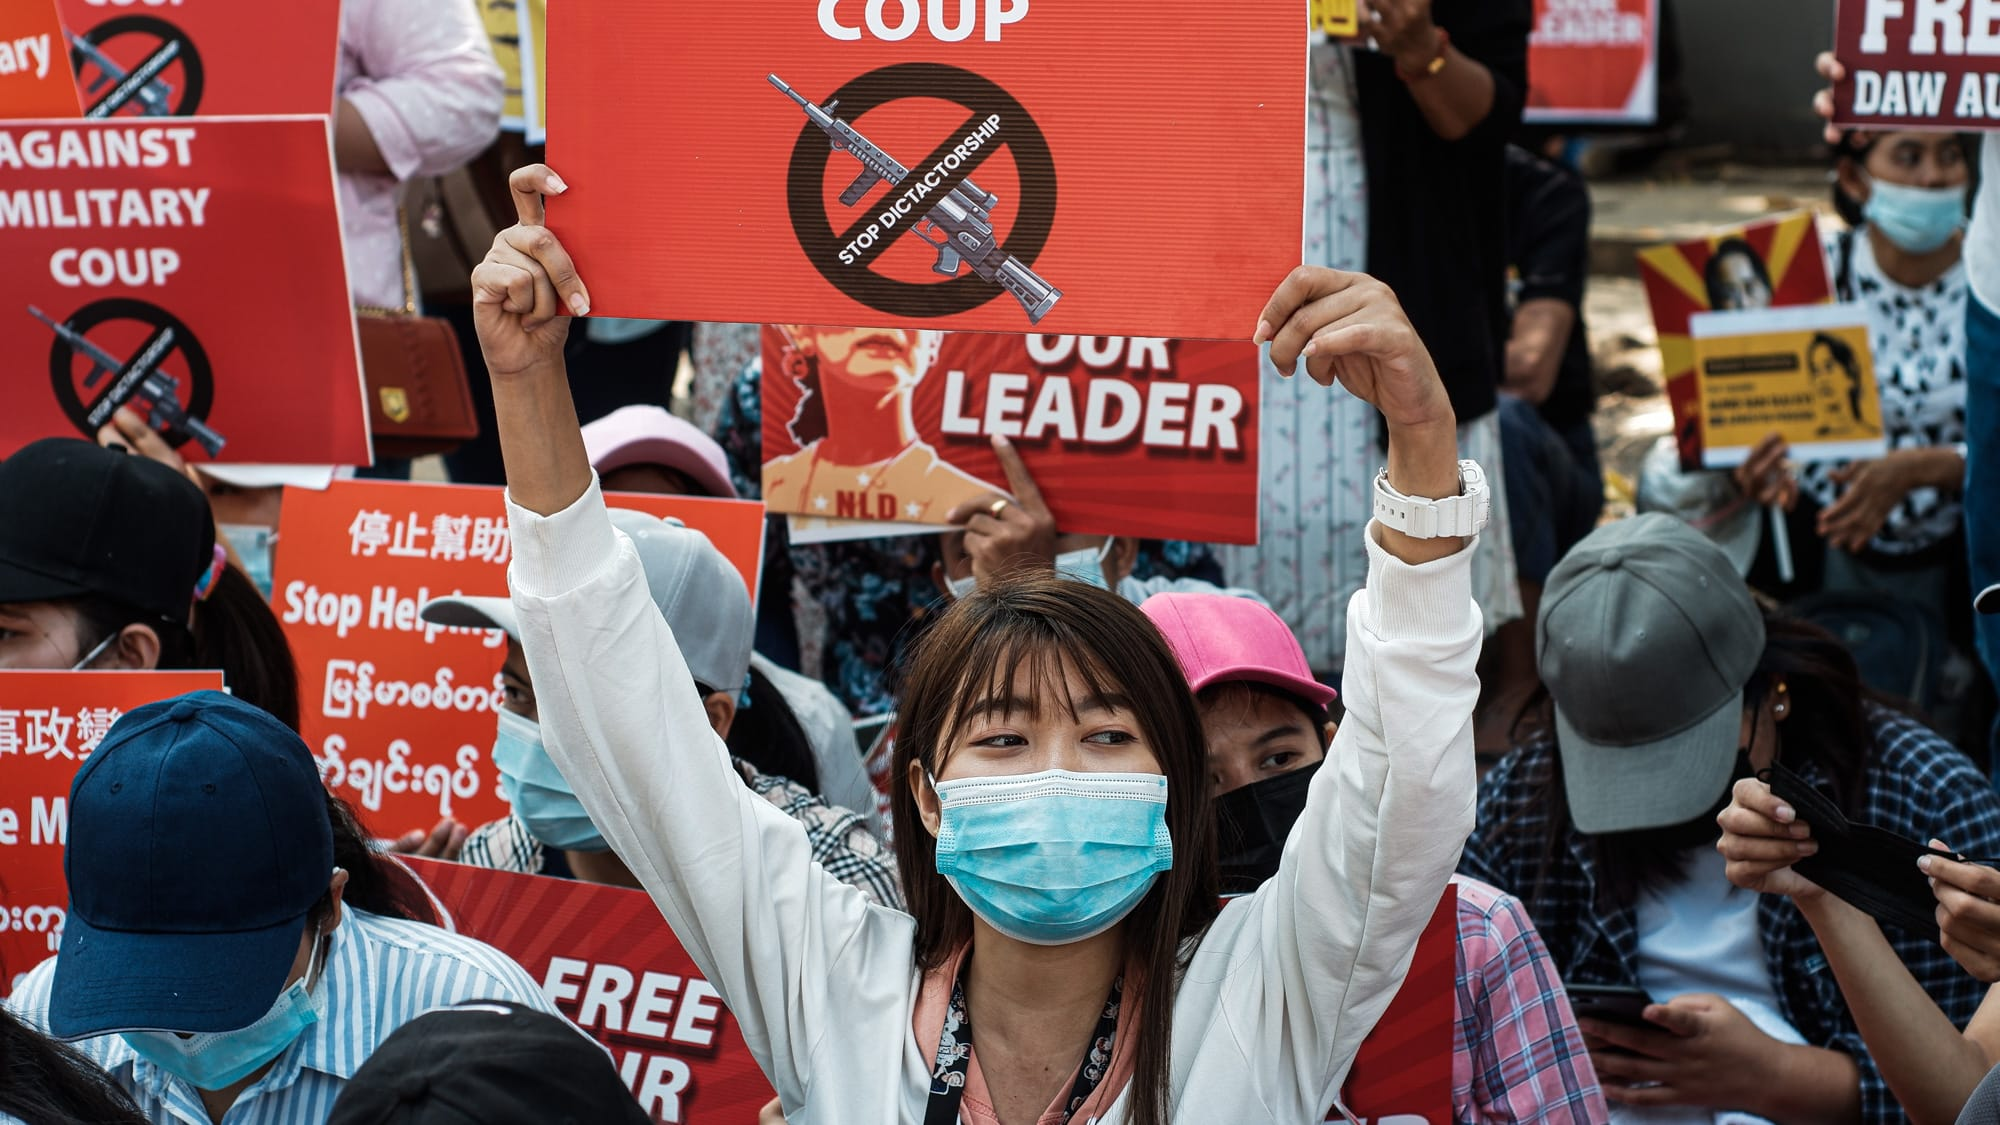 Protest in Myanmar against Military Coup 14-Feb-2021